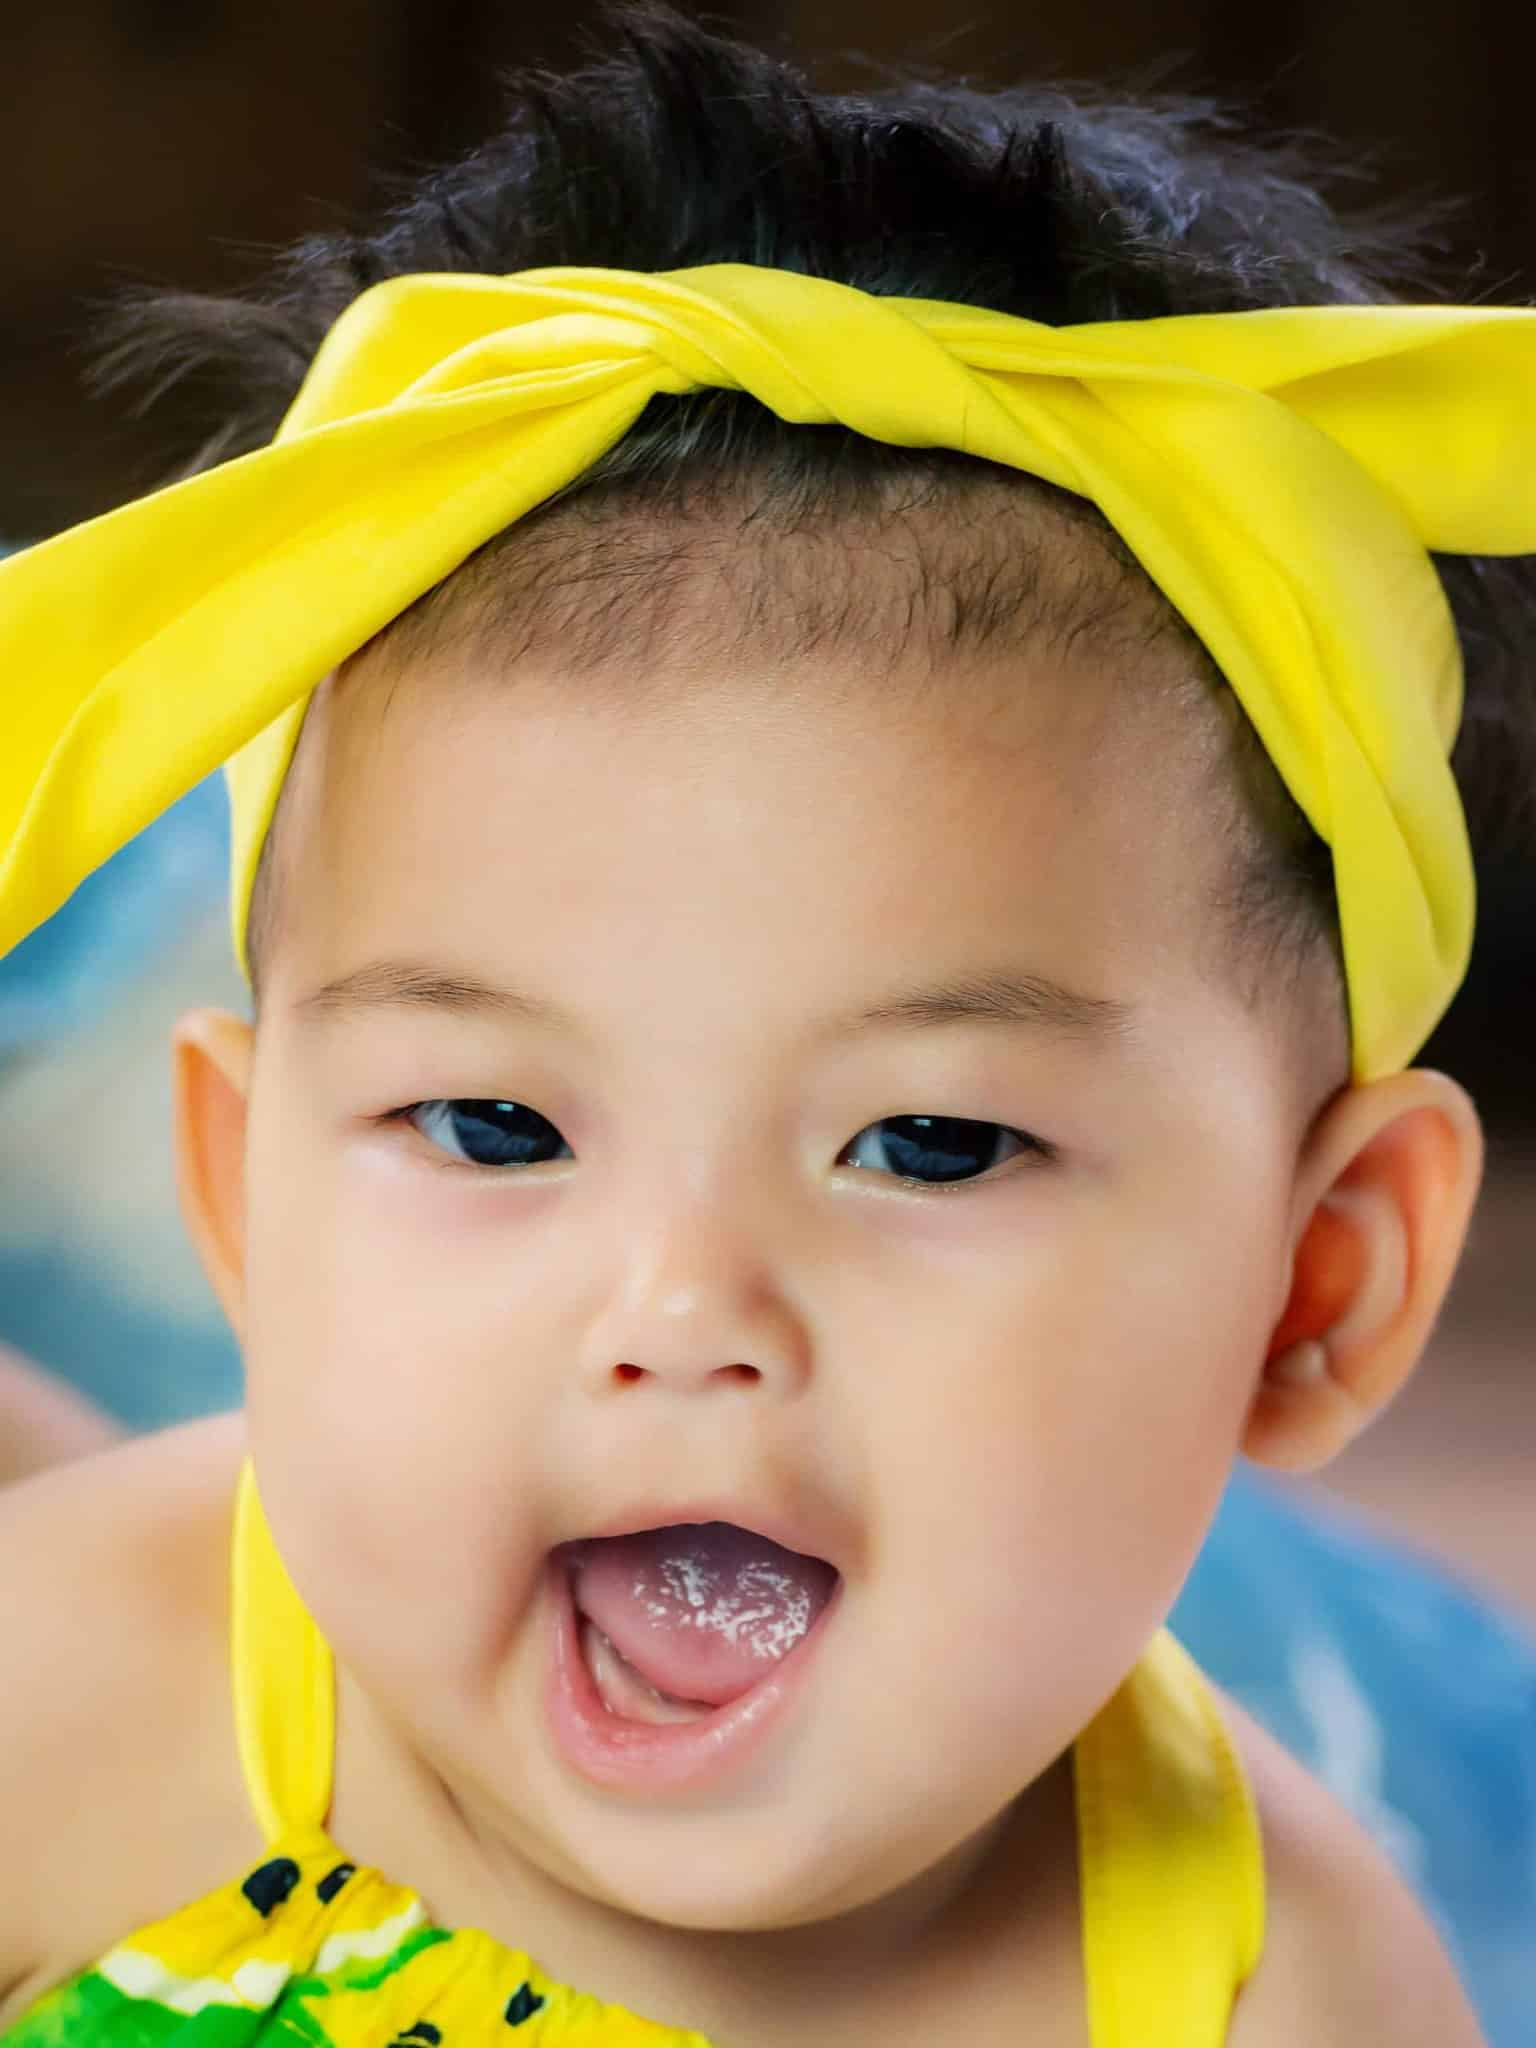 asian baby girl with white patches on her tongue